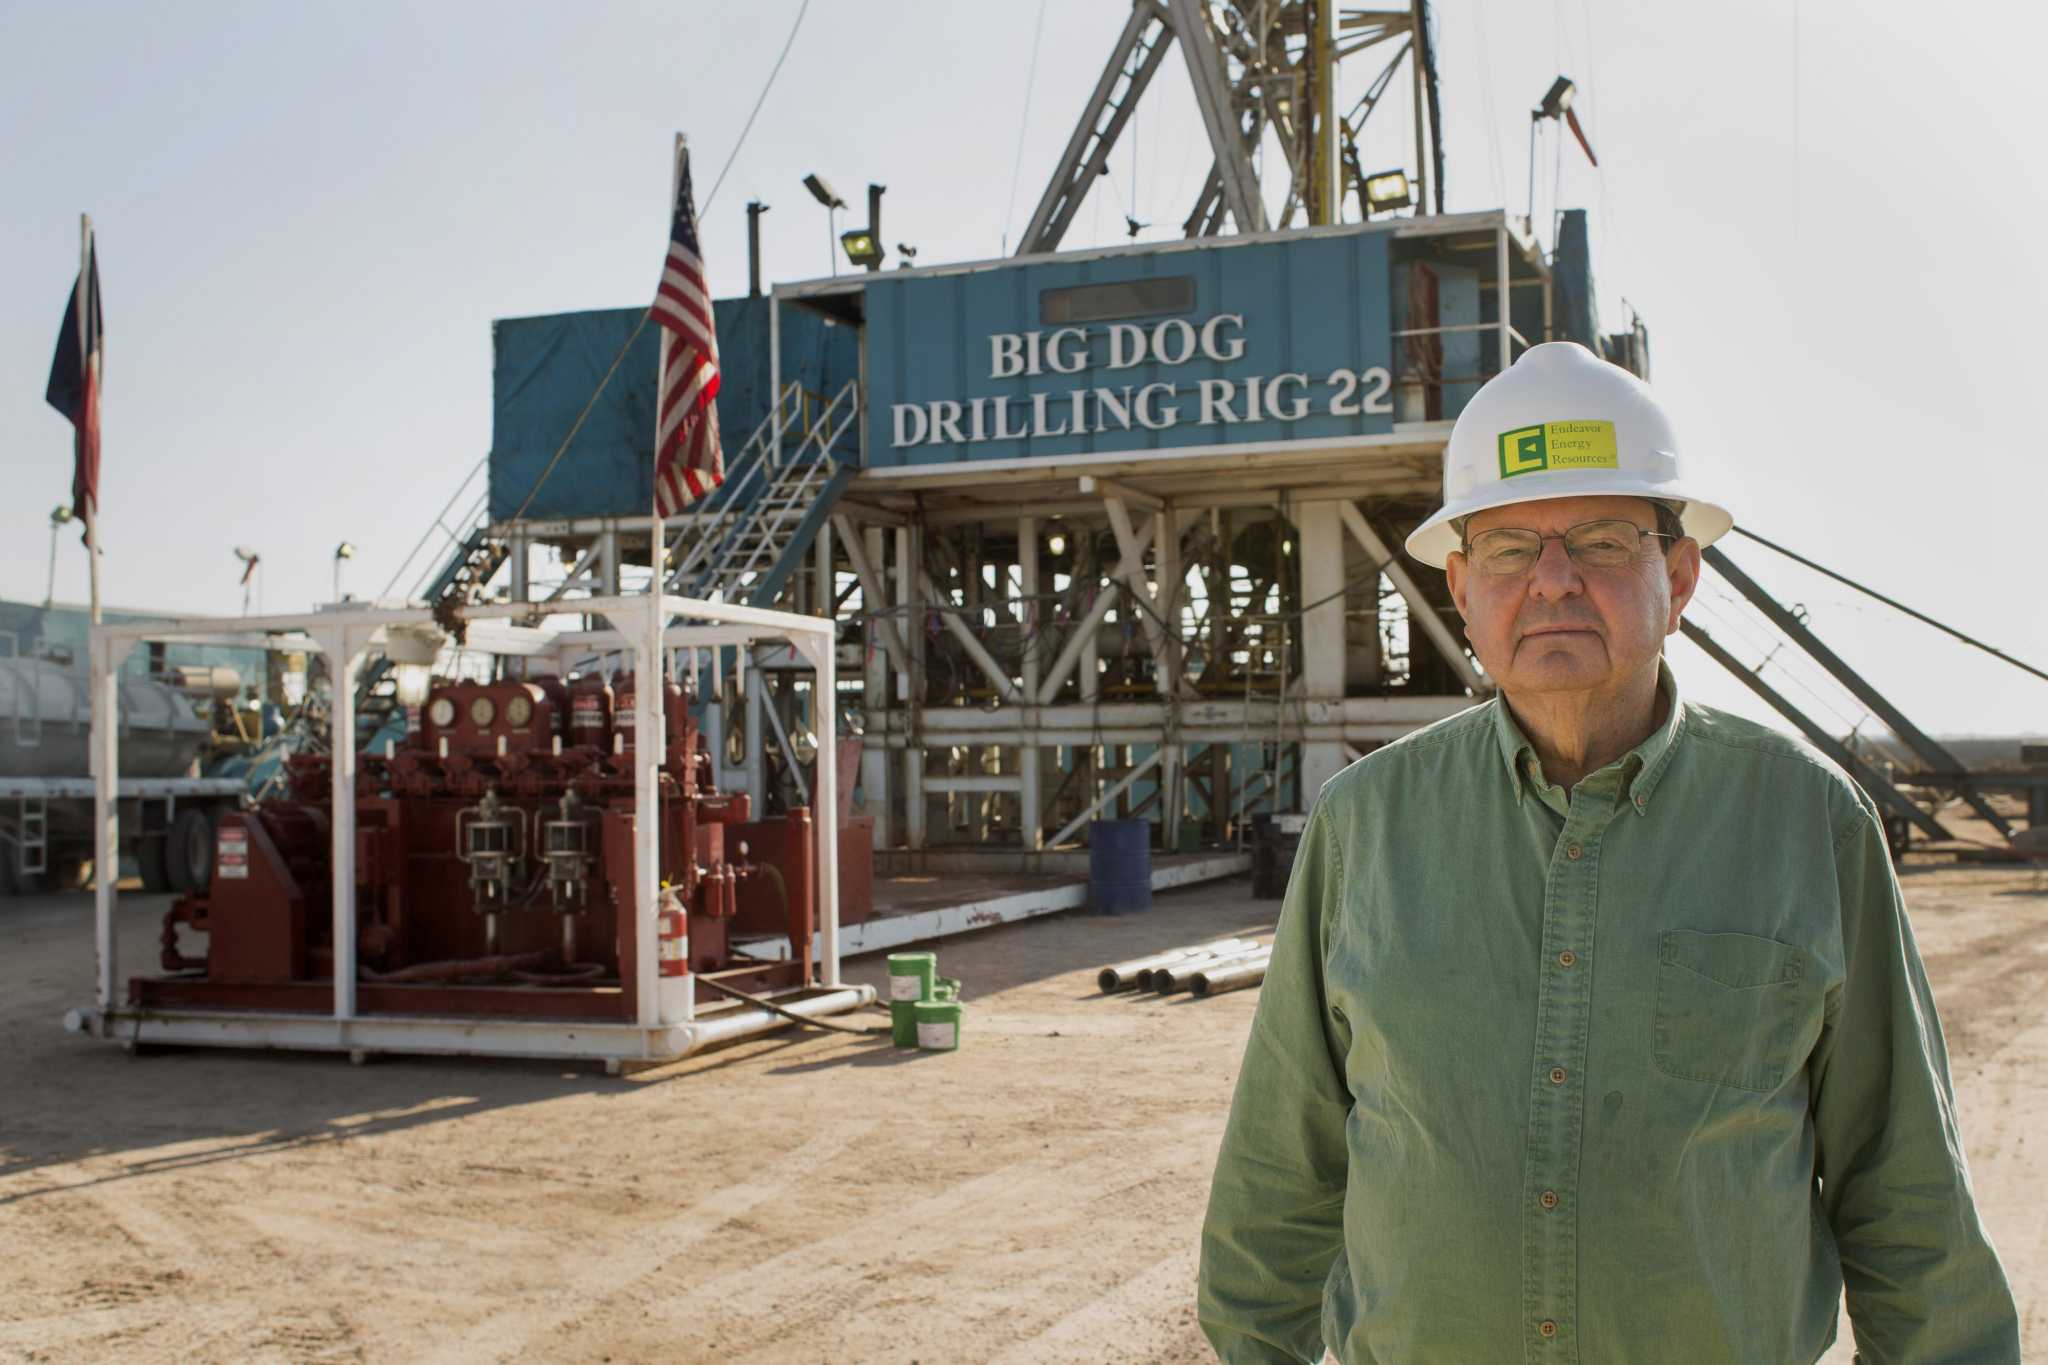 Wildcatter billionaire not giving up Permian Basin without a fight